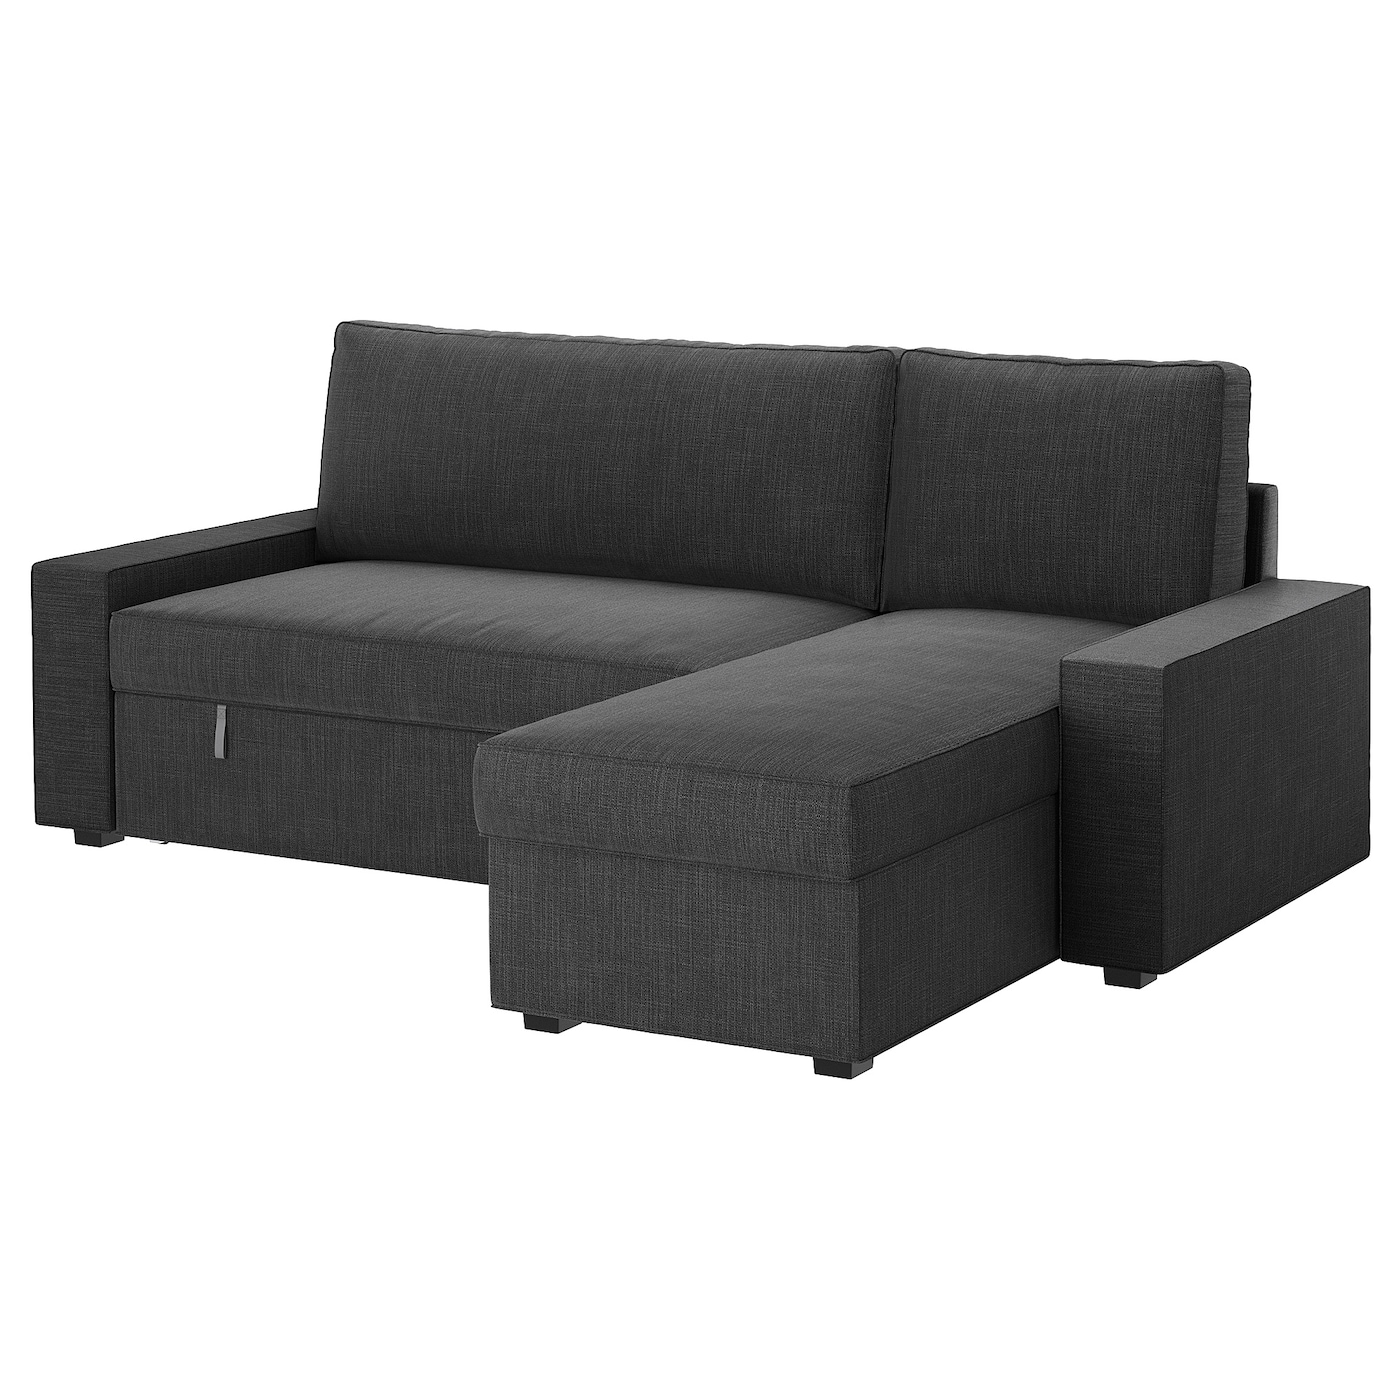 Vilasund sofa bed with chaise longue hillared anthracite for Sofas con shenlong